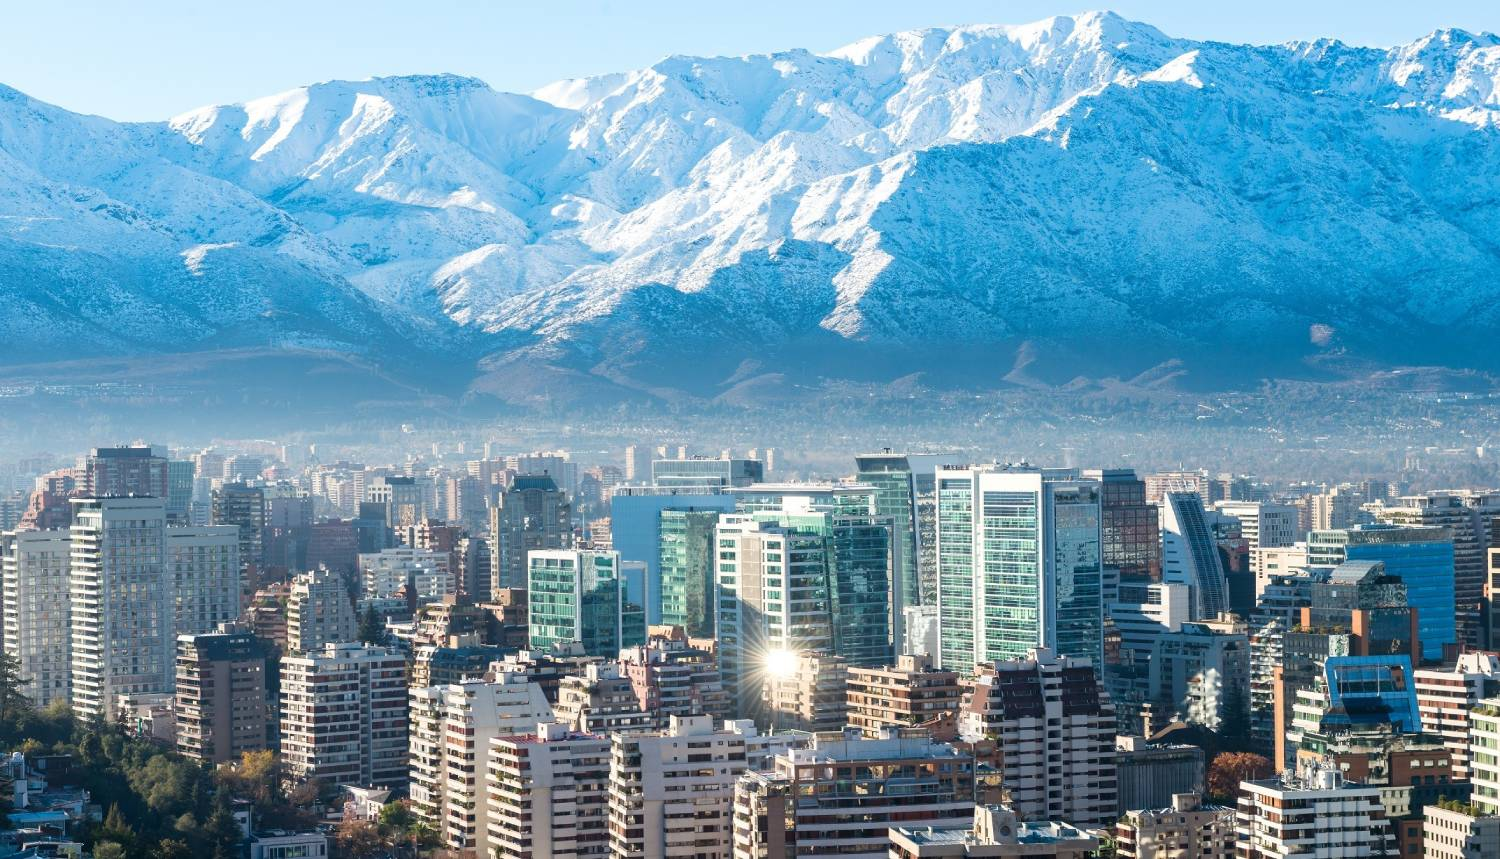 Santiago - The Best Places To Visit In Chile